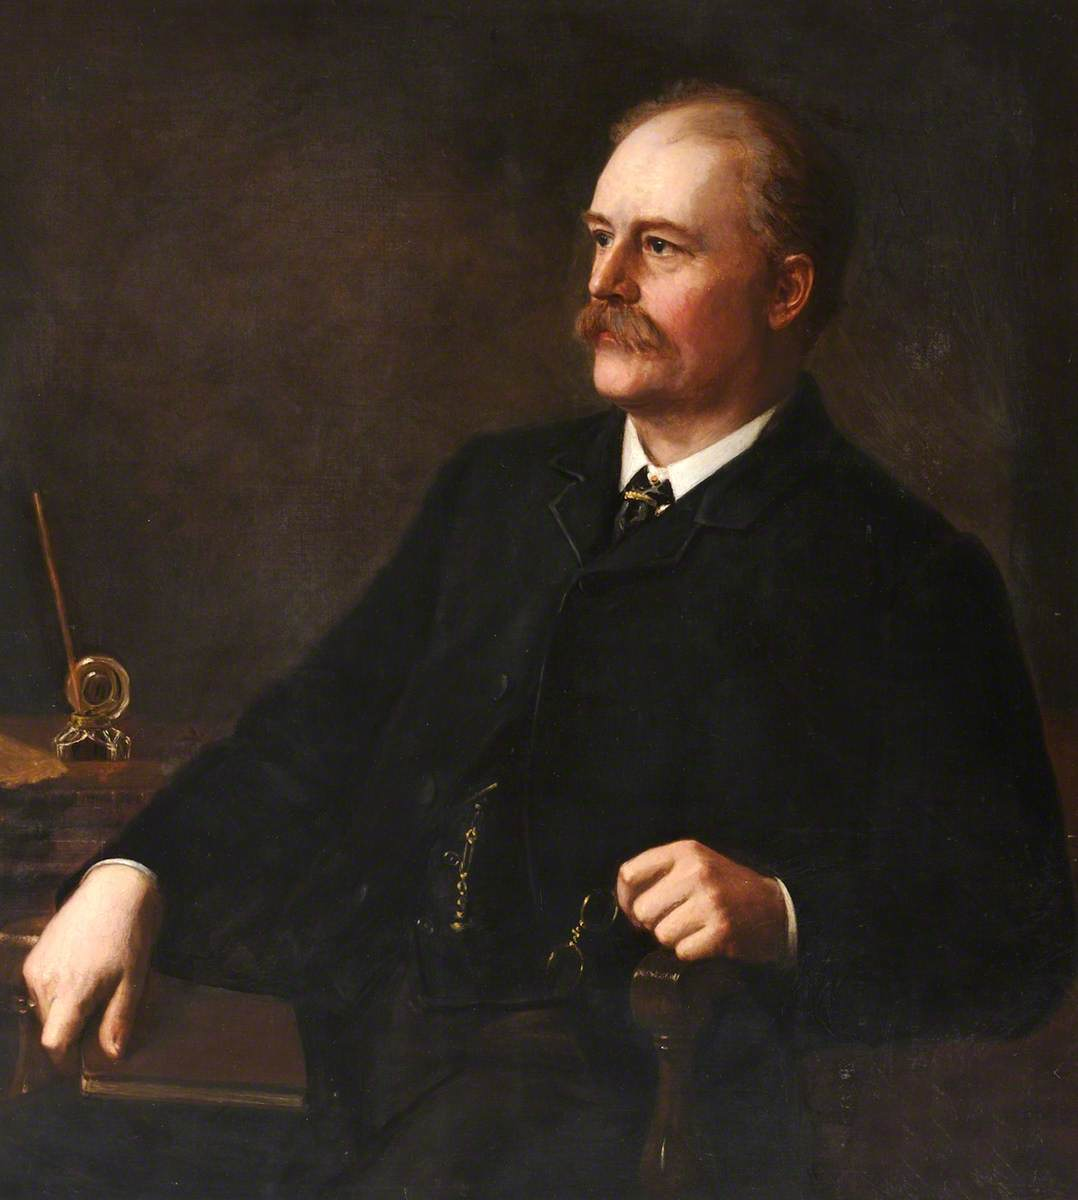 John Allen Brown (1833–1903), FRGS, First Chairman of the Ealing Free Library